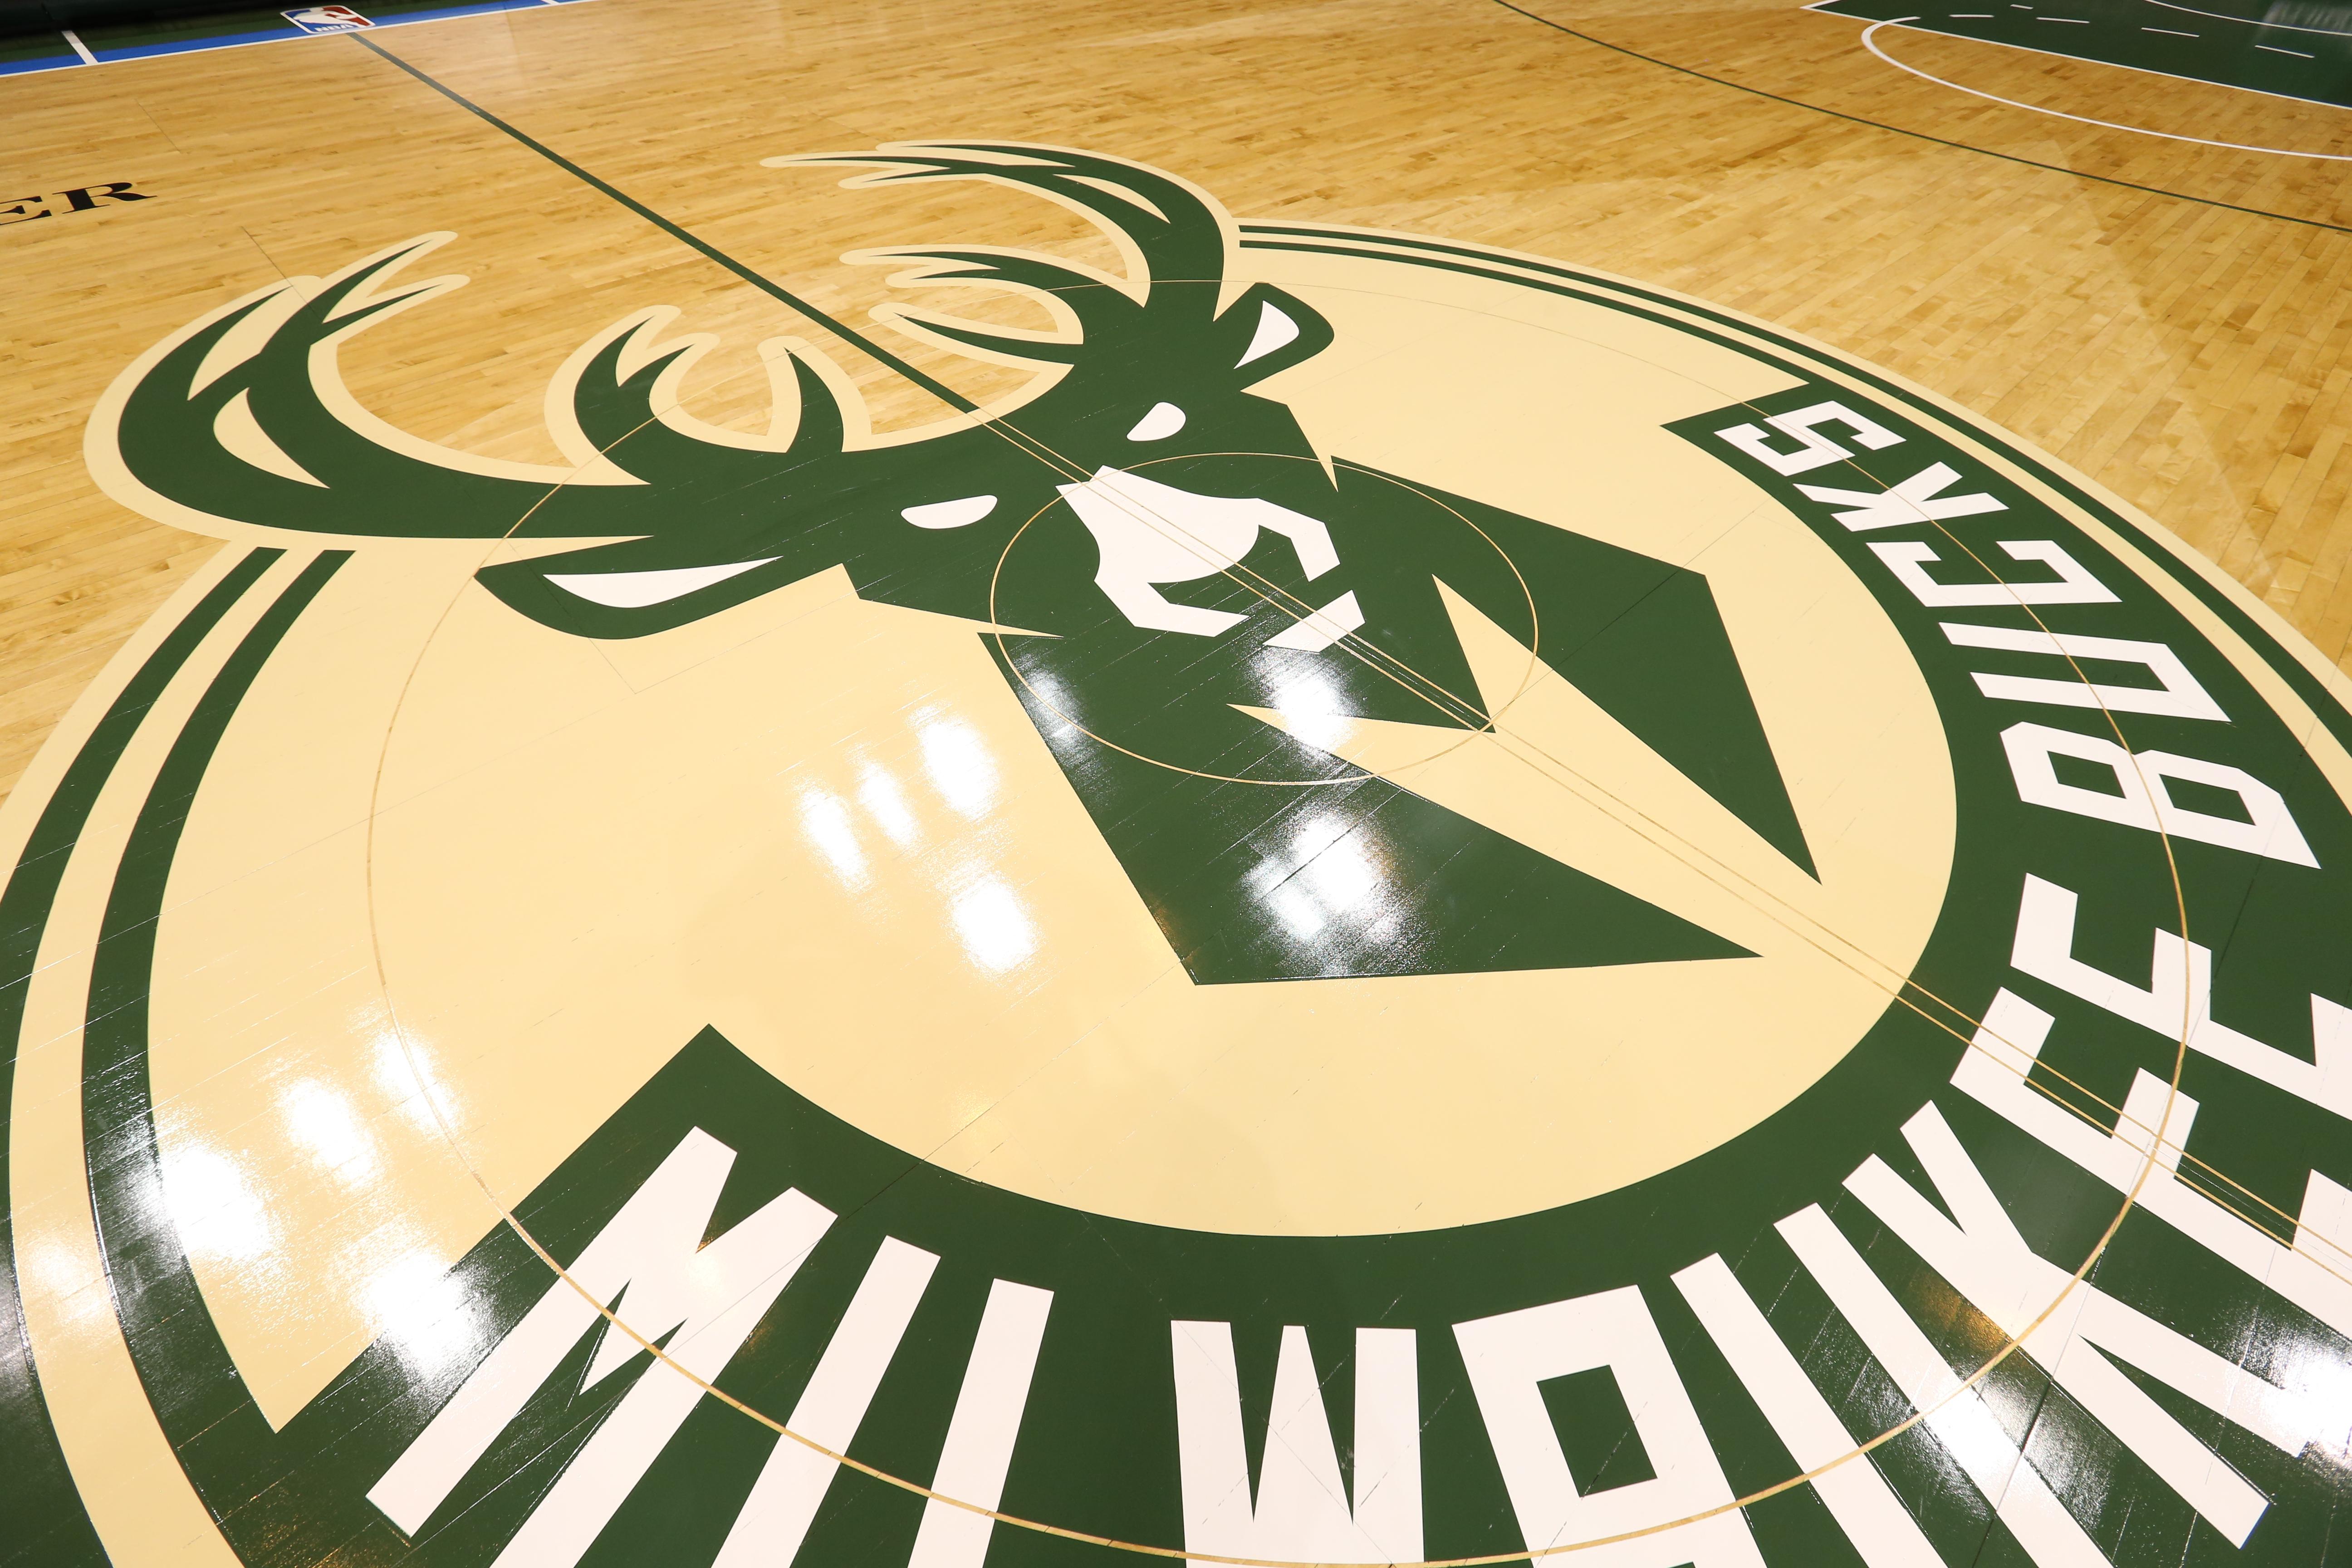 MILWAUKEE, WI - JUNE 23: This is a view of the Milwaukee Bucks new court on June 23, 2015 at the BMO Harris Bradley Center in Milwaukee, Wisconson. (Photo by Gary Dineen/NBAE via Getty Images)